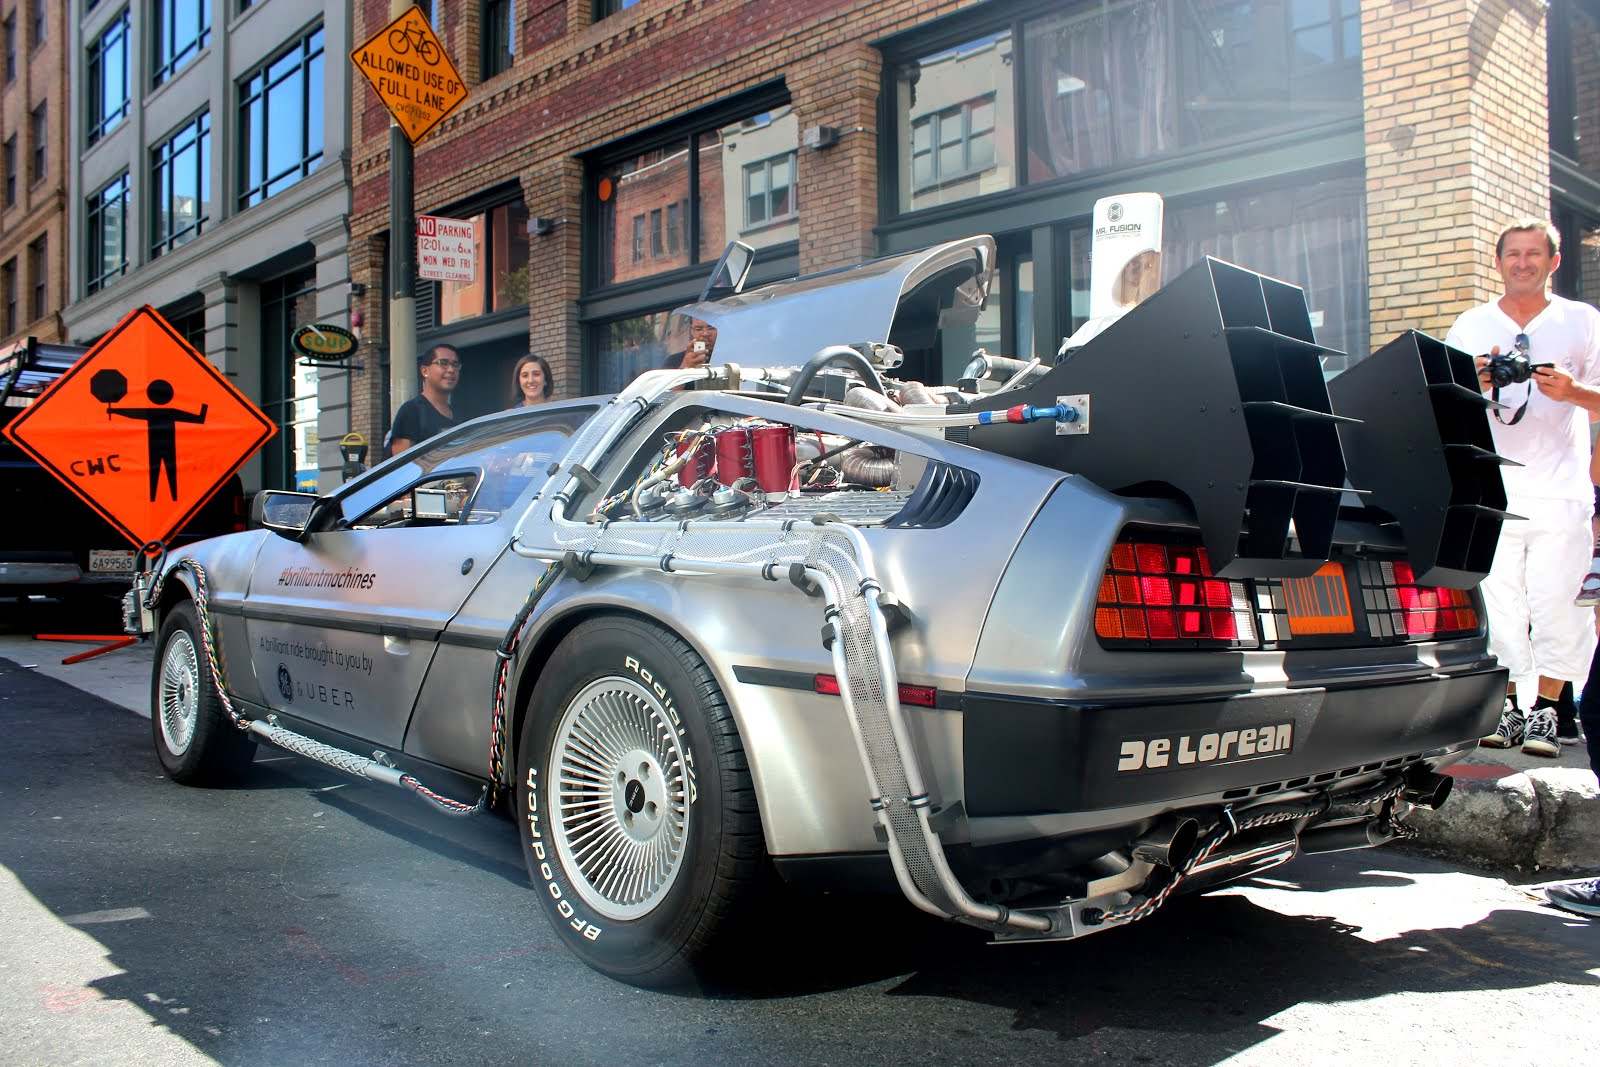 Delorean_DMC-12_Time_Machine_in_San_Francisco.JPG